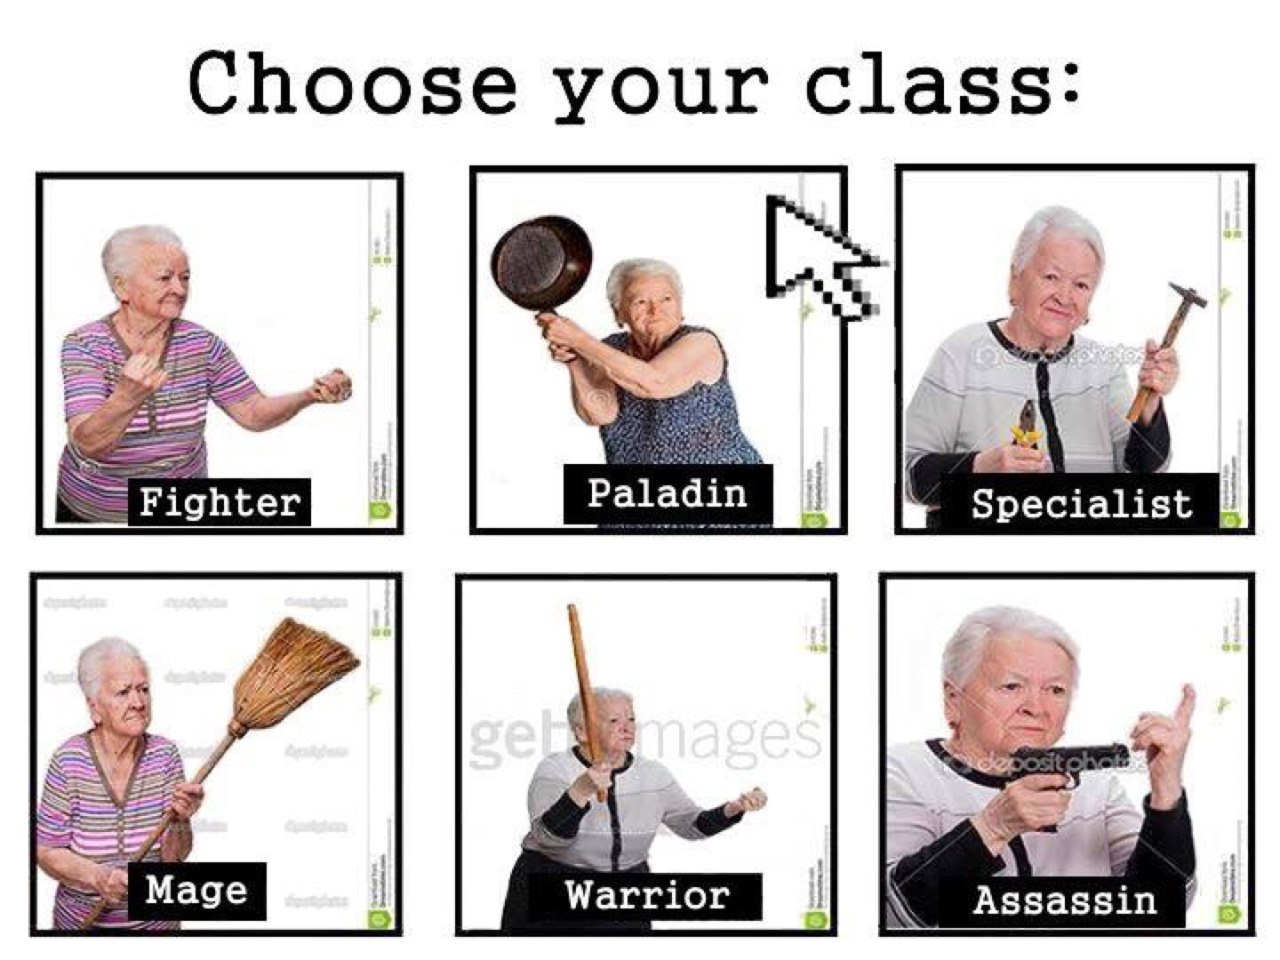 Choose your class!